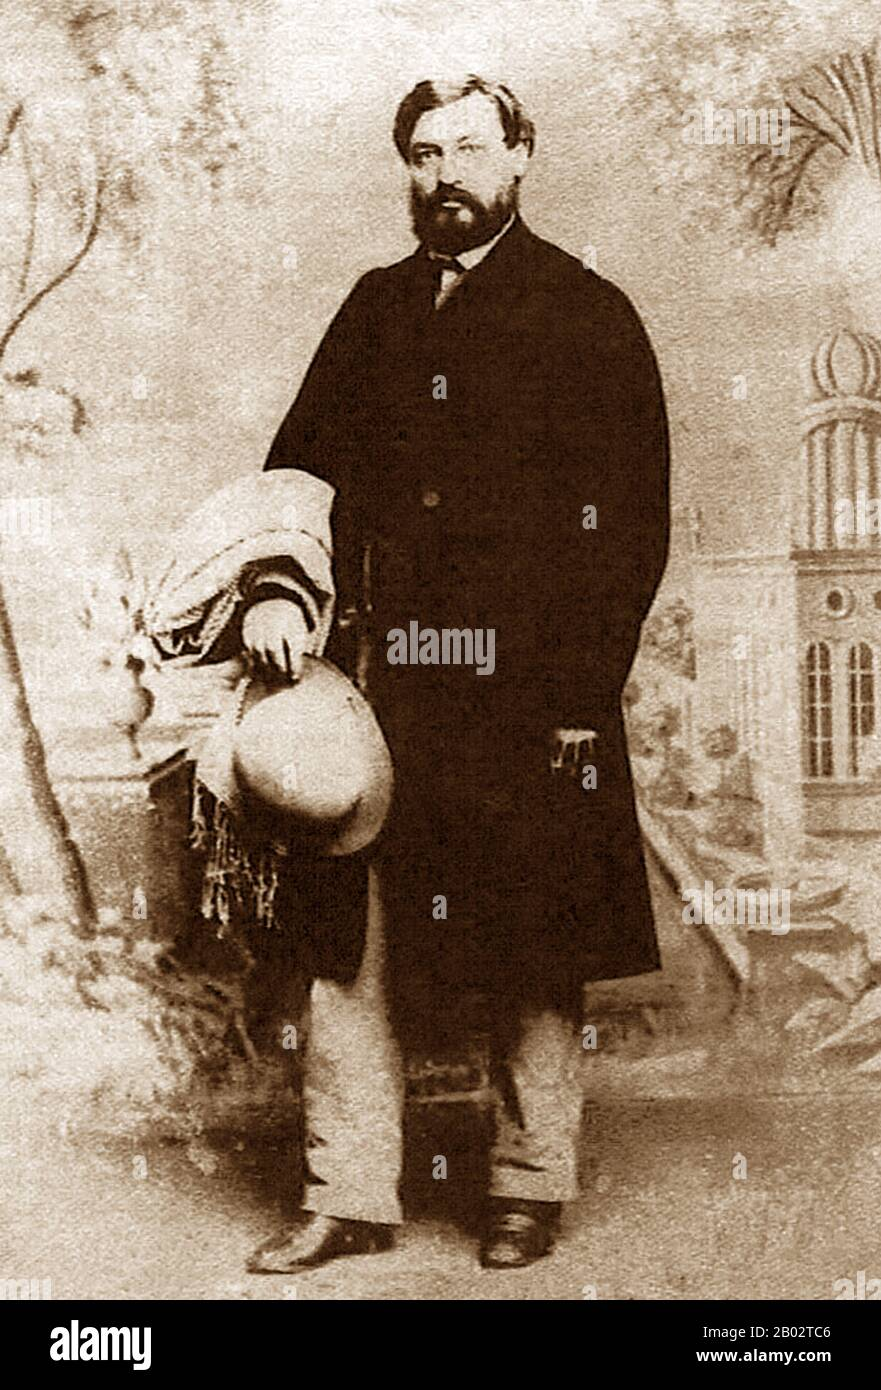 Moses Wilhelm Shapira was born in 1830 to Polish-Jewish parents in Kamenets-Podolski, which at the time was part of Russian-annexed Poland (in modern-day Ukraine). Shapira's father emigrated to Ottoman Palestine and in 1856, at the age of 25, Moses Shapira followed.  On the way, while in Bucharest, Moses Shapira converted to Christianity and applied for German citizenship. Once in Jerusalem, he joined the community of Anglican missionaries and converts and in 1861 opened a store in the Street of the Christians, today's Christian Quarter Road. He sold the usual religious souvenirs enjoyed by pi Stock Photo